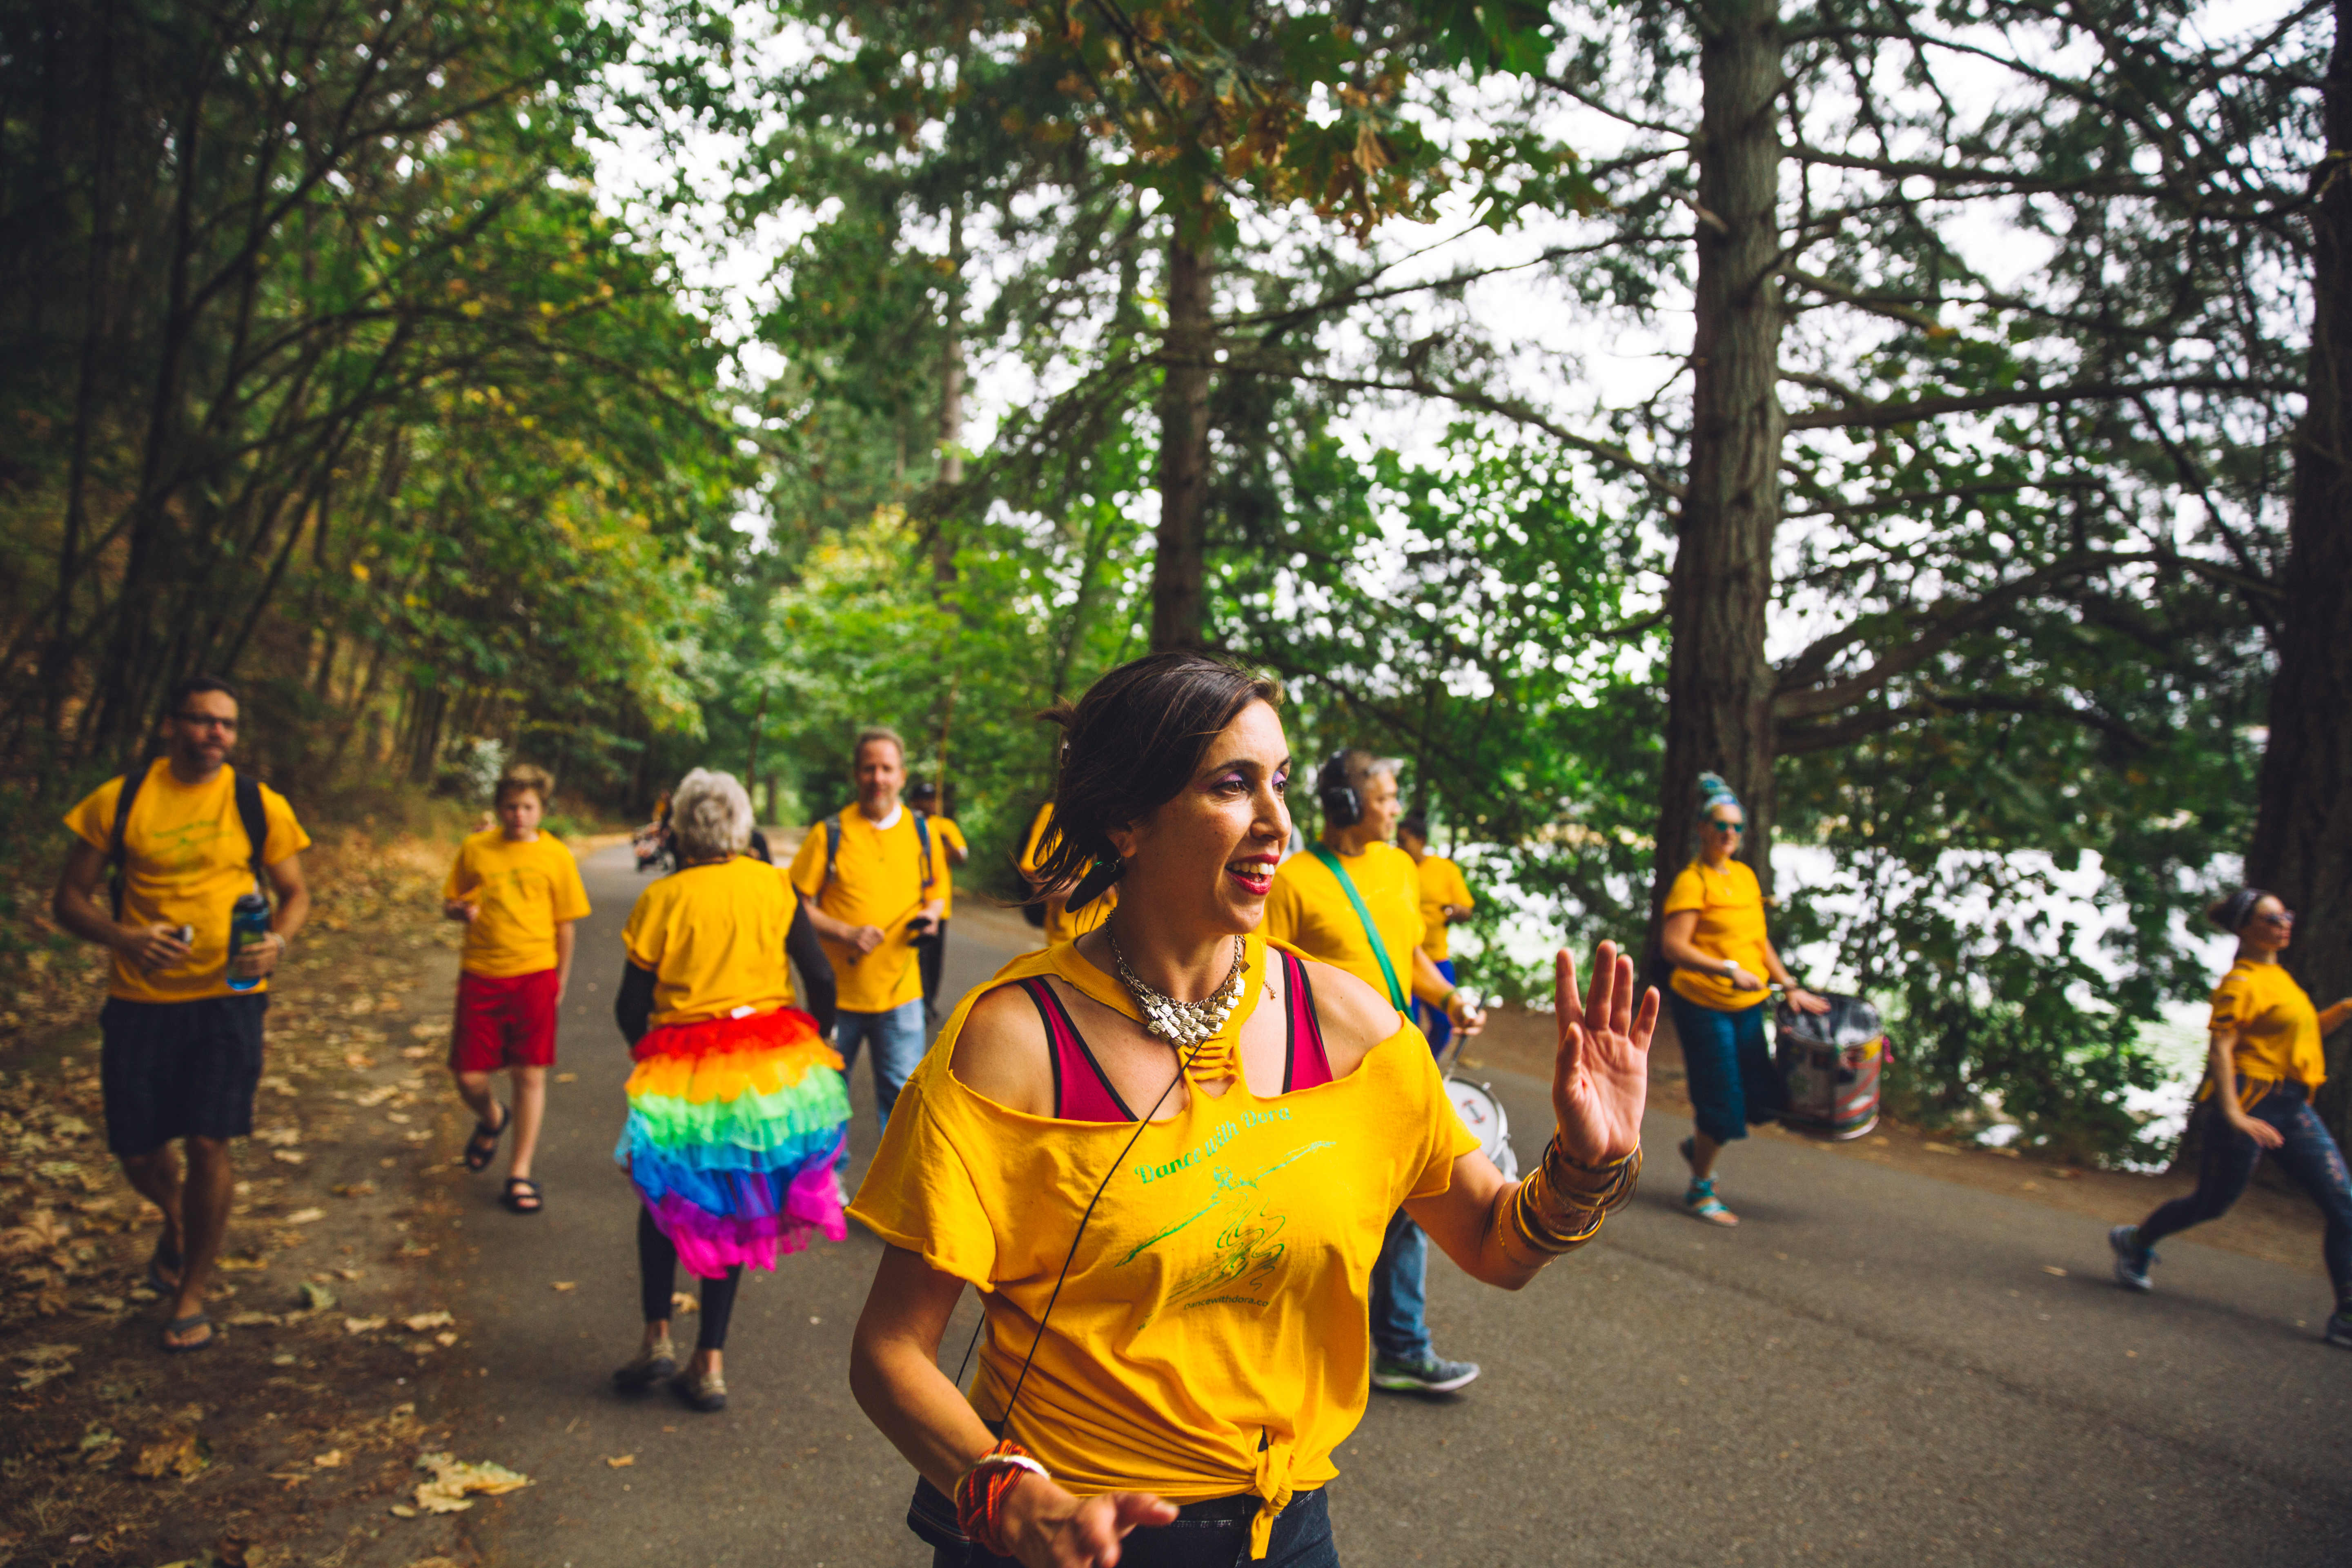 Every year, Dora Oliveira and Dance Brazil (along with an amazing percussion section), samba around the Seward Park Loop Trail! No experience was required for participants, and a quick lesson was even given at the beginning of the loop for total newbies. After working up an appetite, SAMBAthoners celebrated afterwards with more music, dancing, capoeira and traditional Brazilian food. (Image: Ryan McBoyle / Seattle Refined)